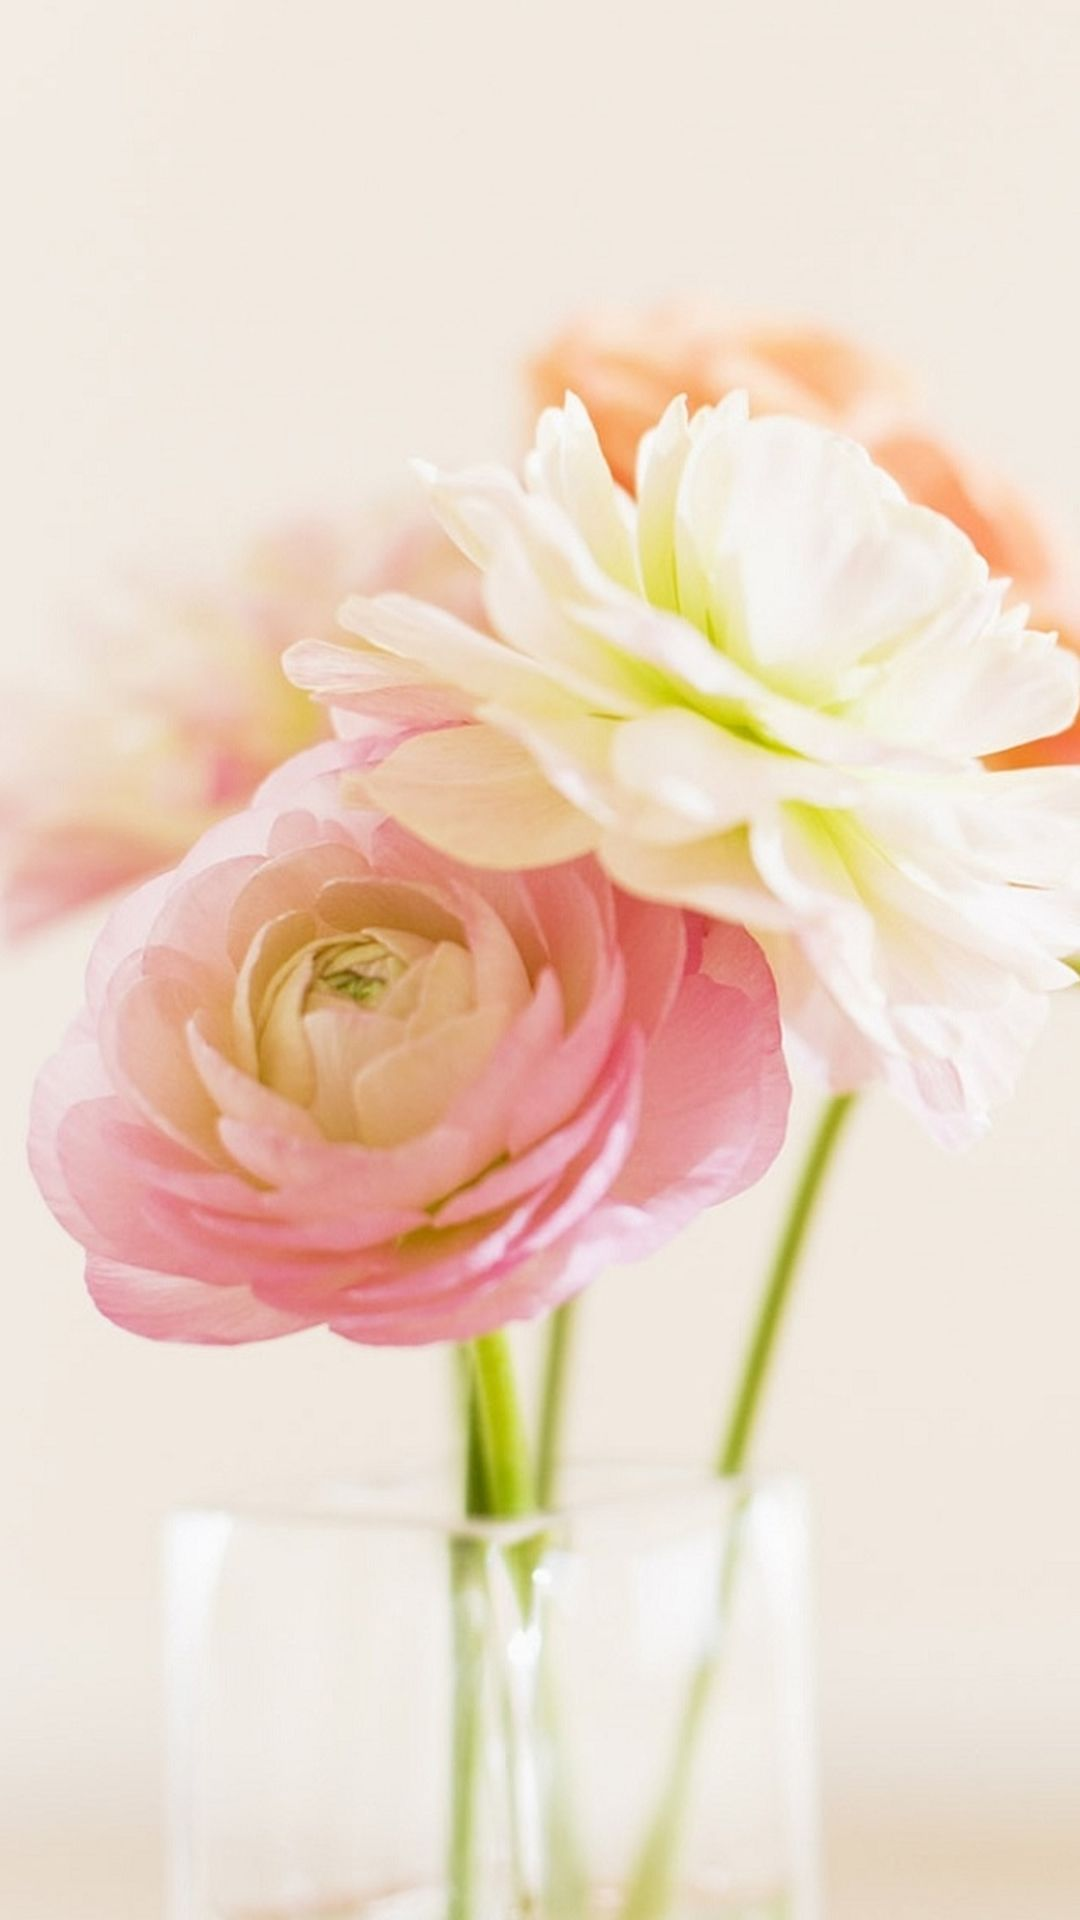 Elegant beautiful bloom glass vase iphone 6 wallpaper for my elegant beautiful bloom glass vase iphone 6 wallpaper reviewsmspy